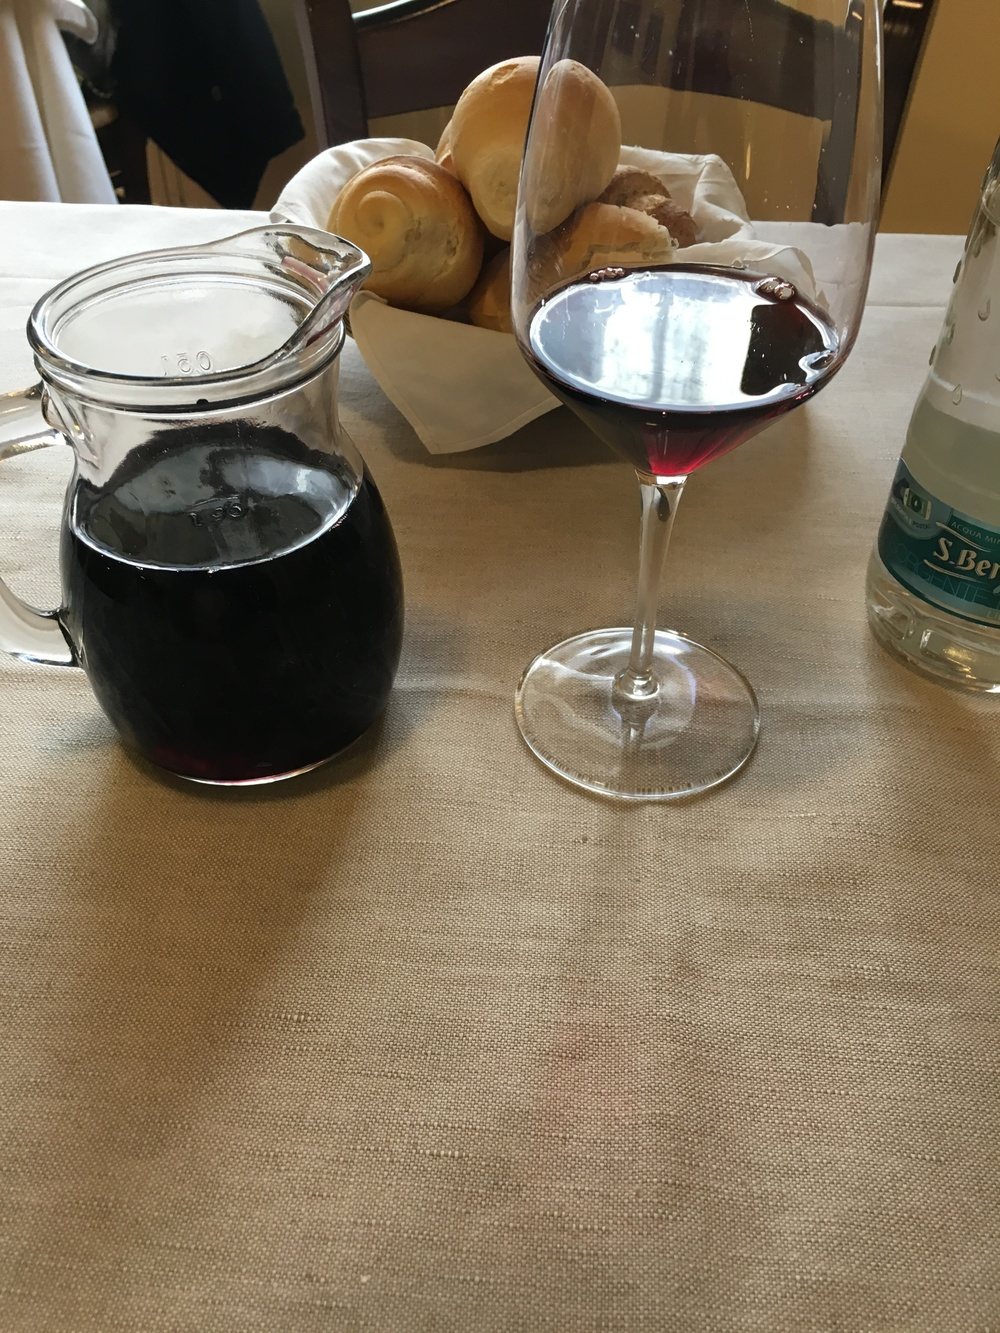 A Jug wine by any other name